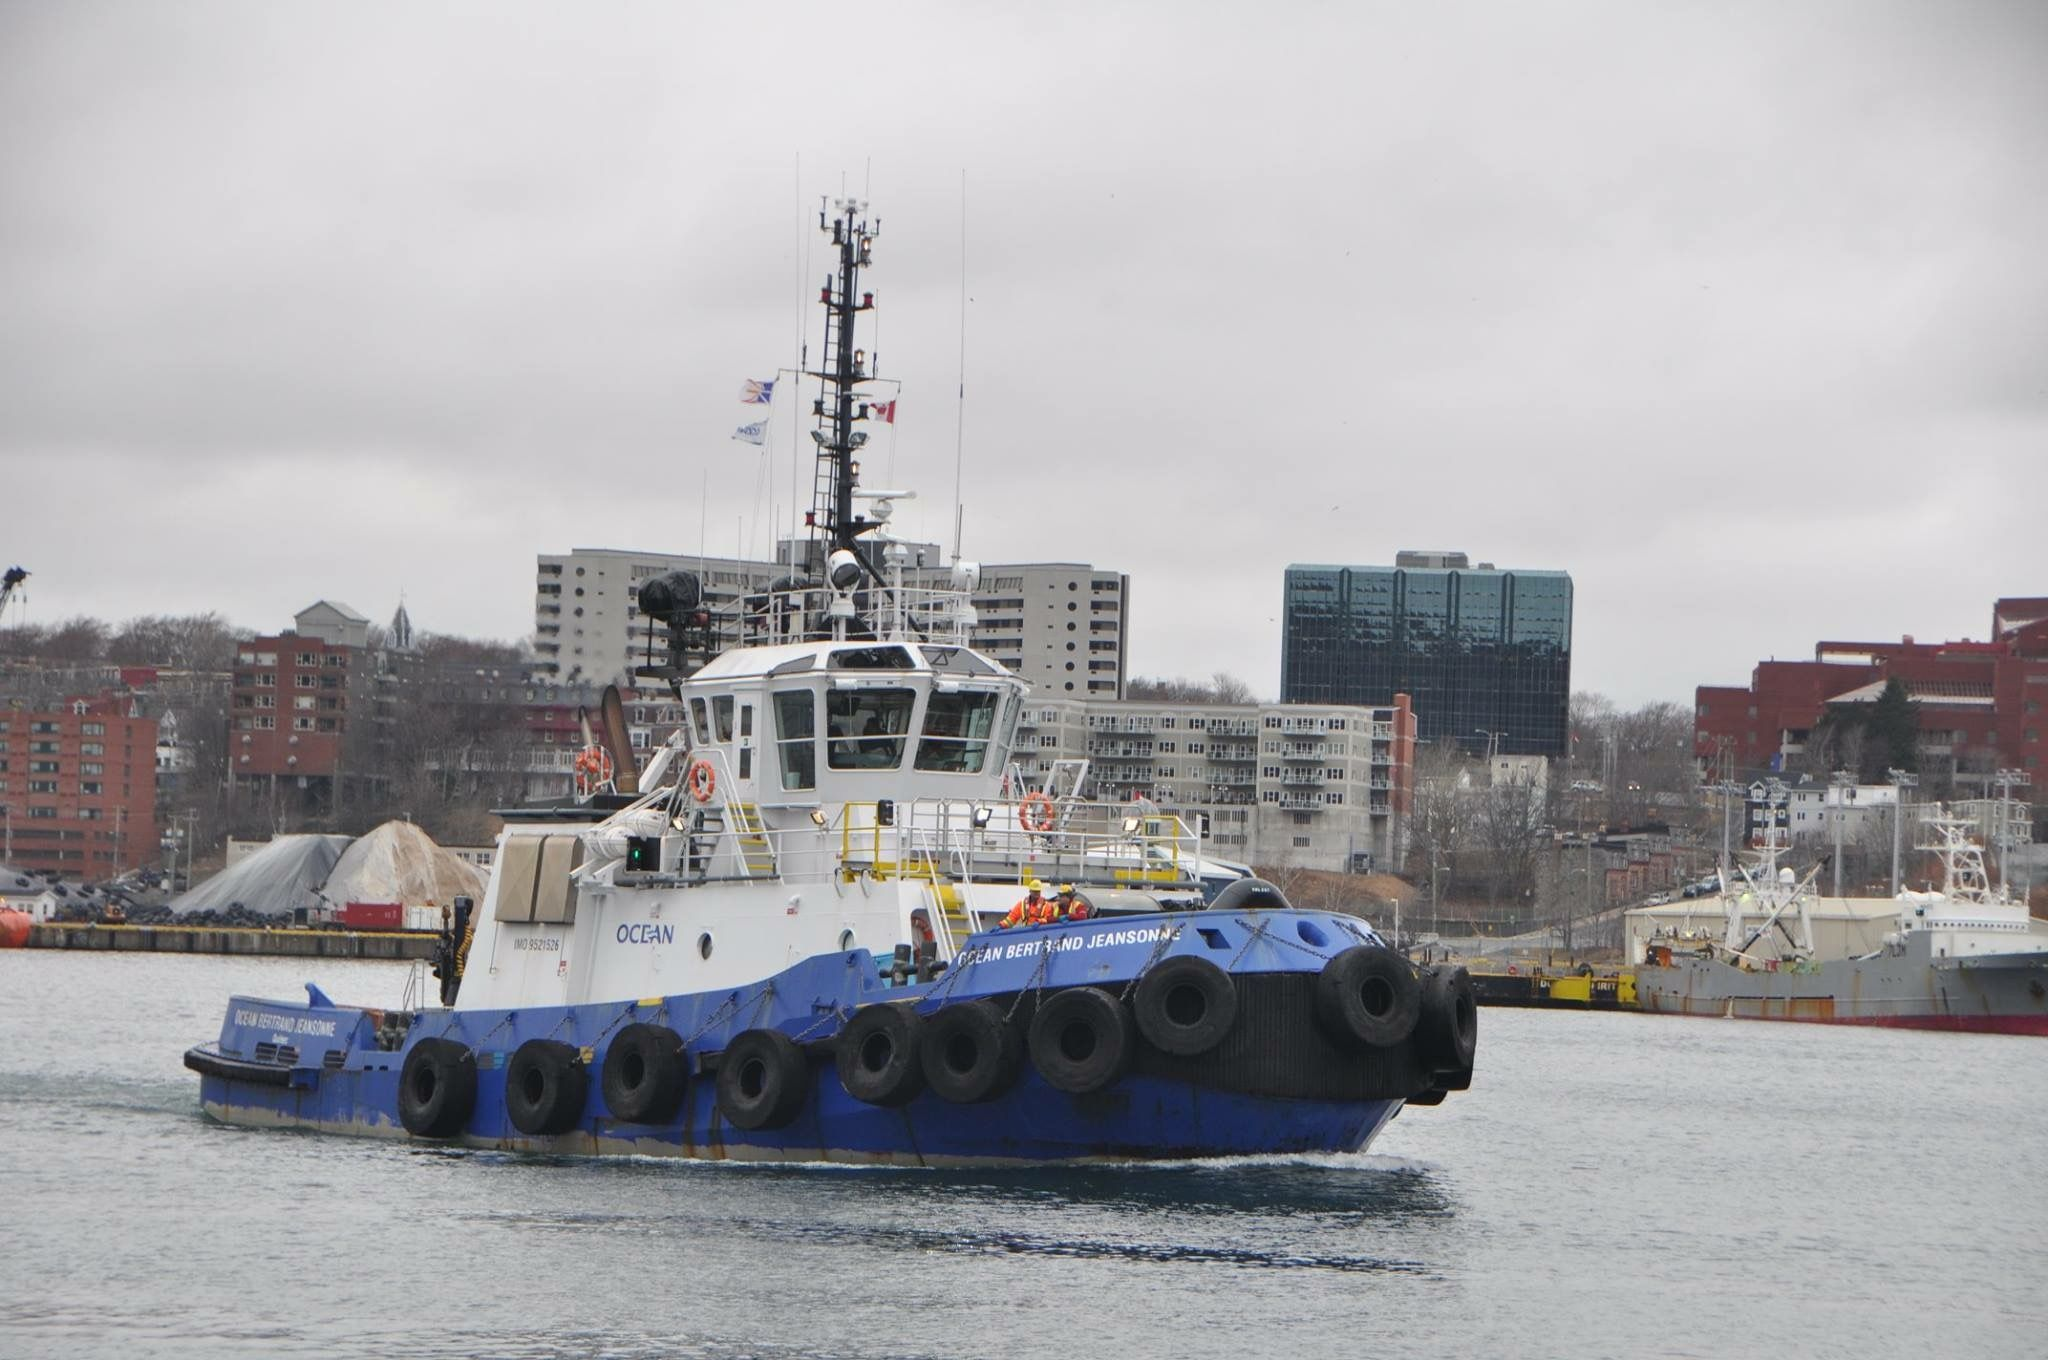 Pin By Karl Mckinney On Tugboats Tug Boats